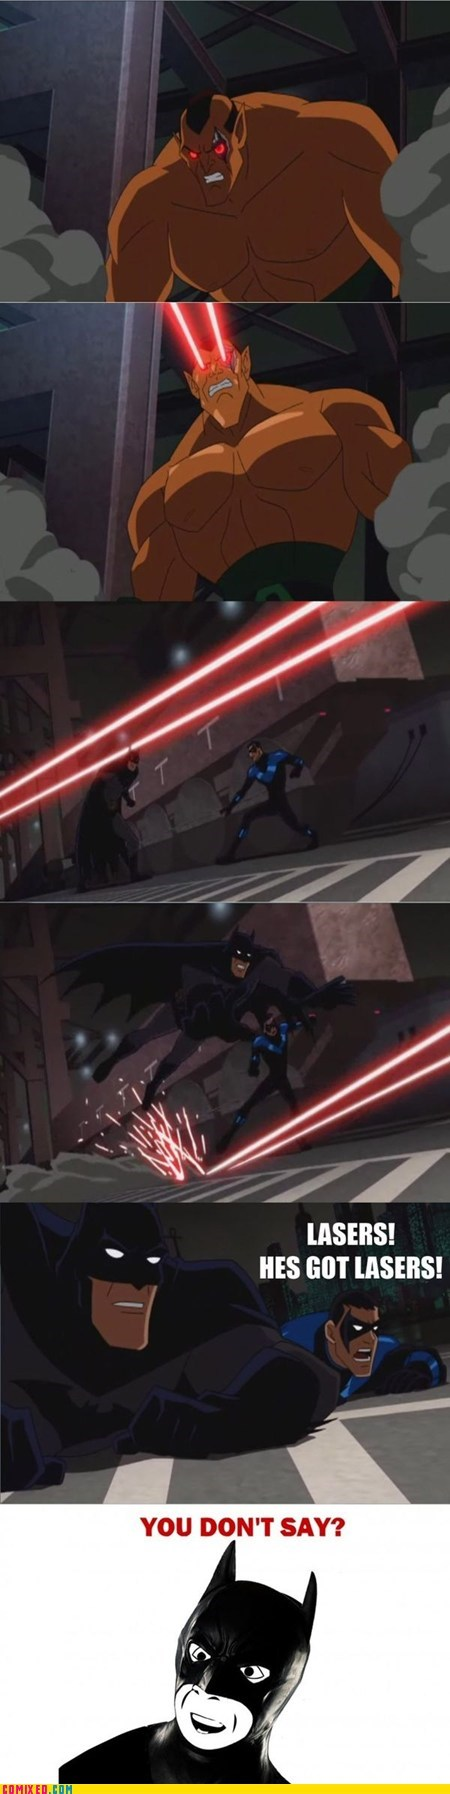 Saturday Morning Cartoons captain obvious nightwing lasers batman